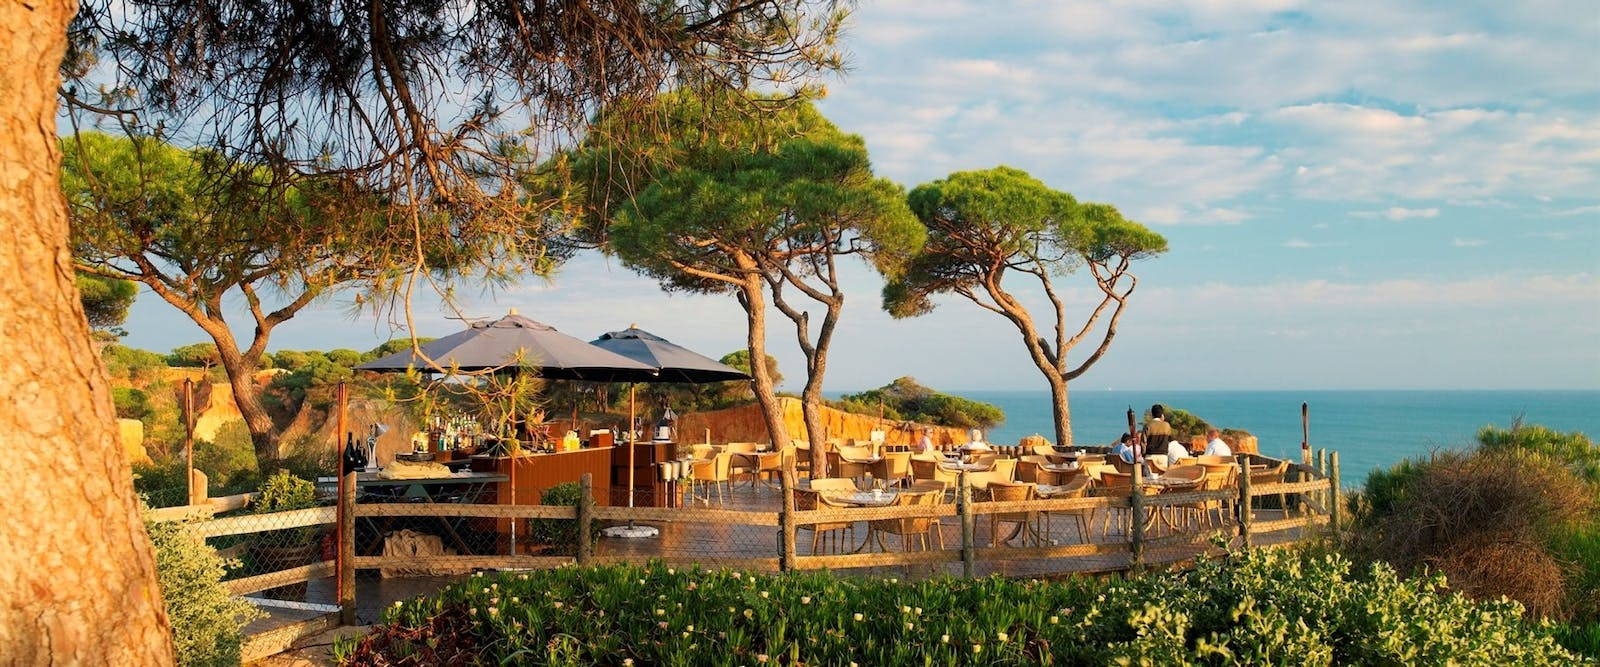 Hotel Beach Club, Pine Cliffs, A Luxury Collection Resort, Algarve